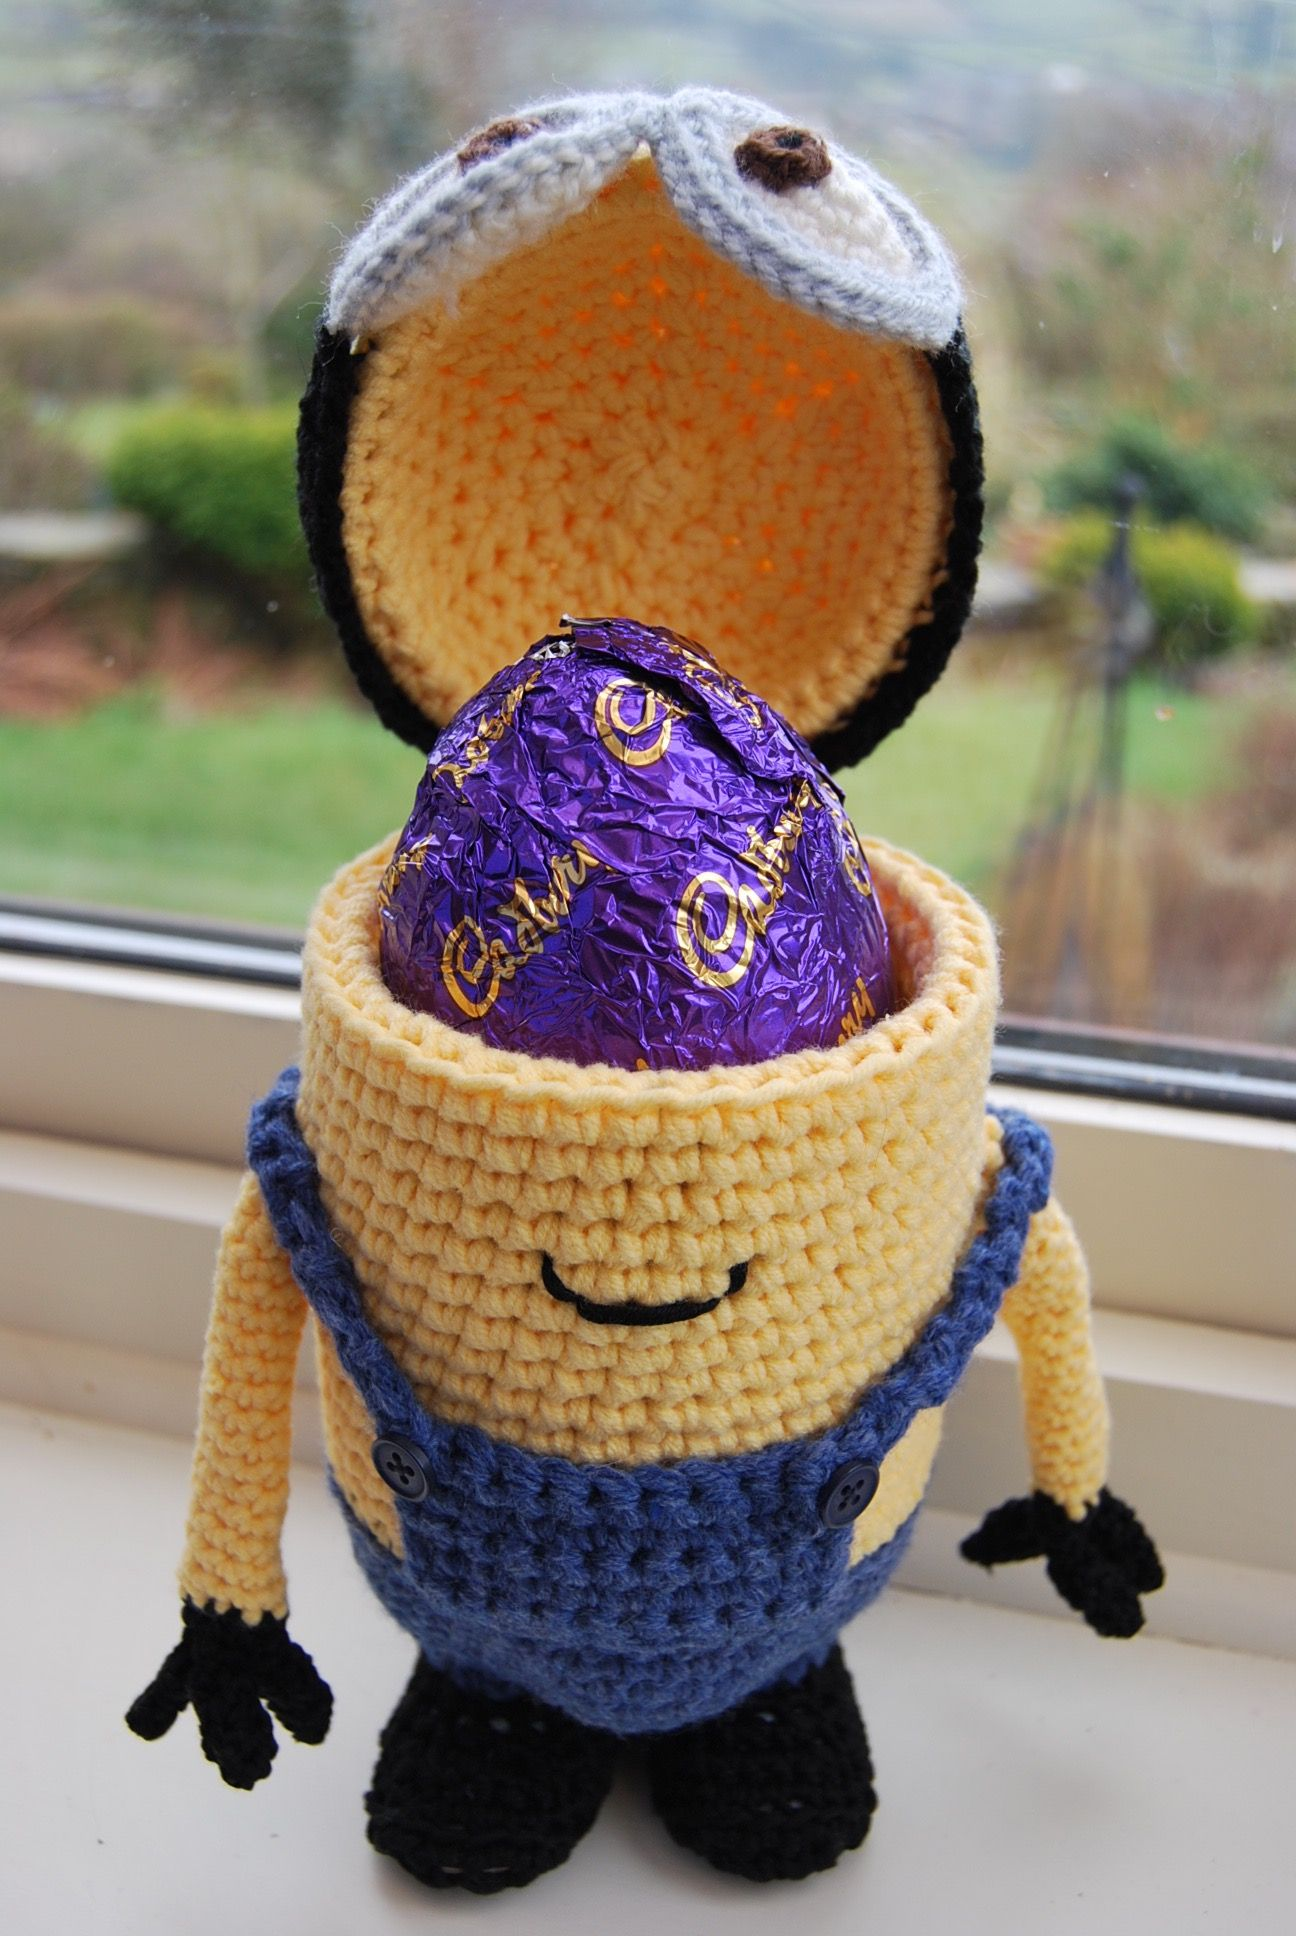 Whos hoping for minions of easter eggs free crochet easter egg whos hoping for minions of easter eggs free crochet easter egg holder pattern at bankloansurffo Images